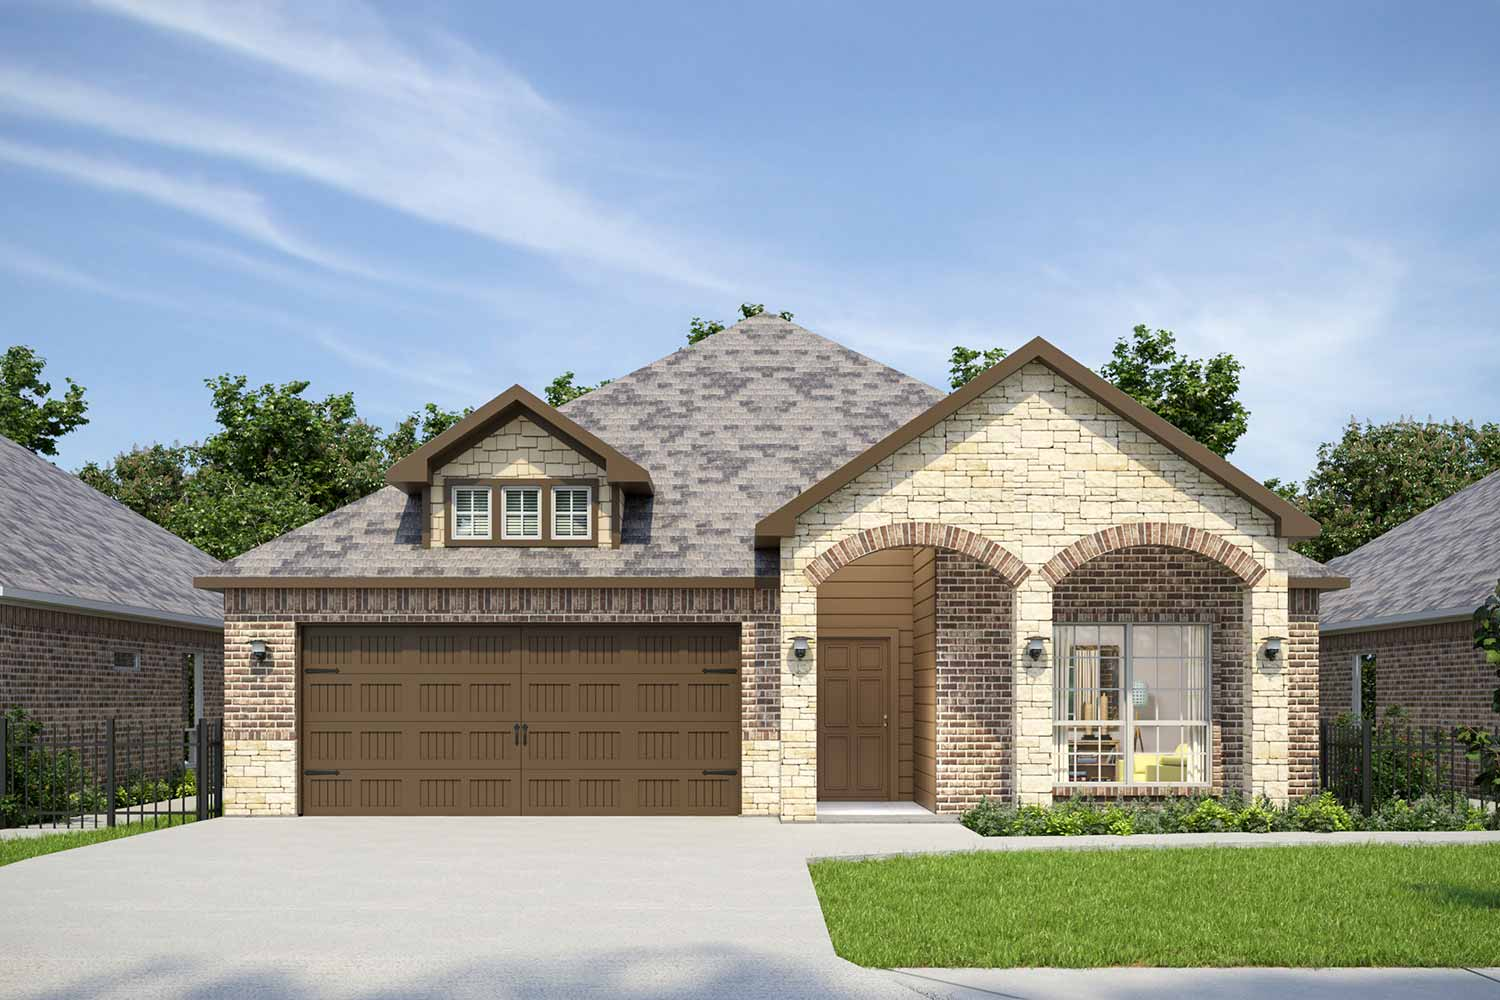 New Homes for Sale in Georgetown TX | 625 Scenic Bluff Dr